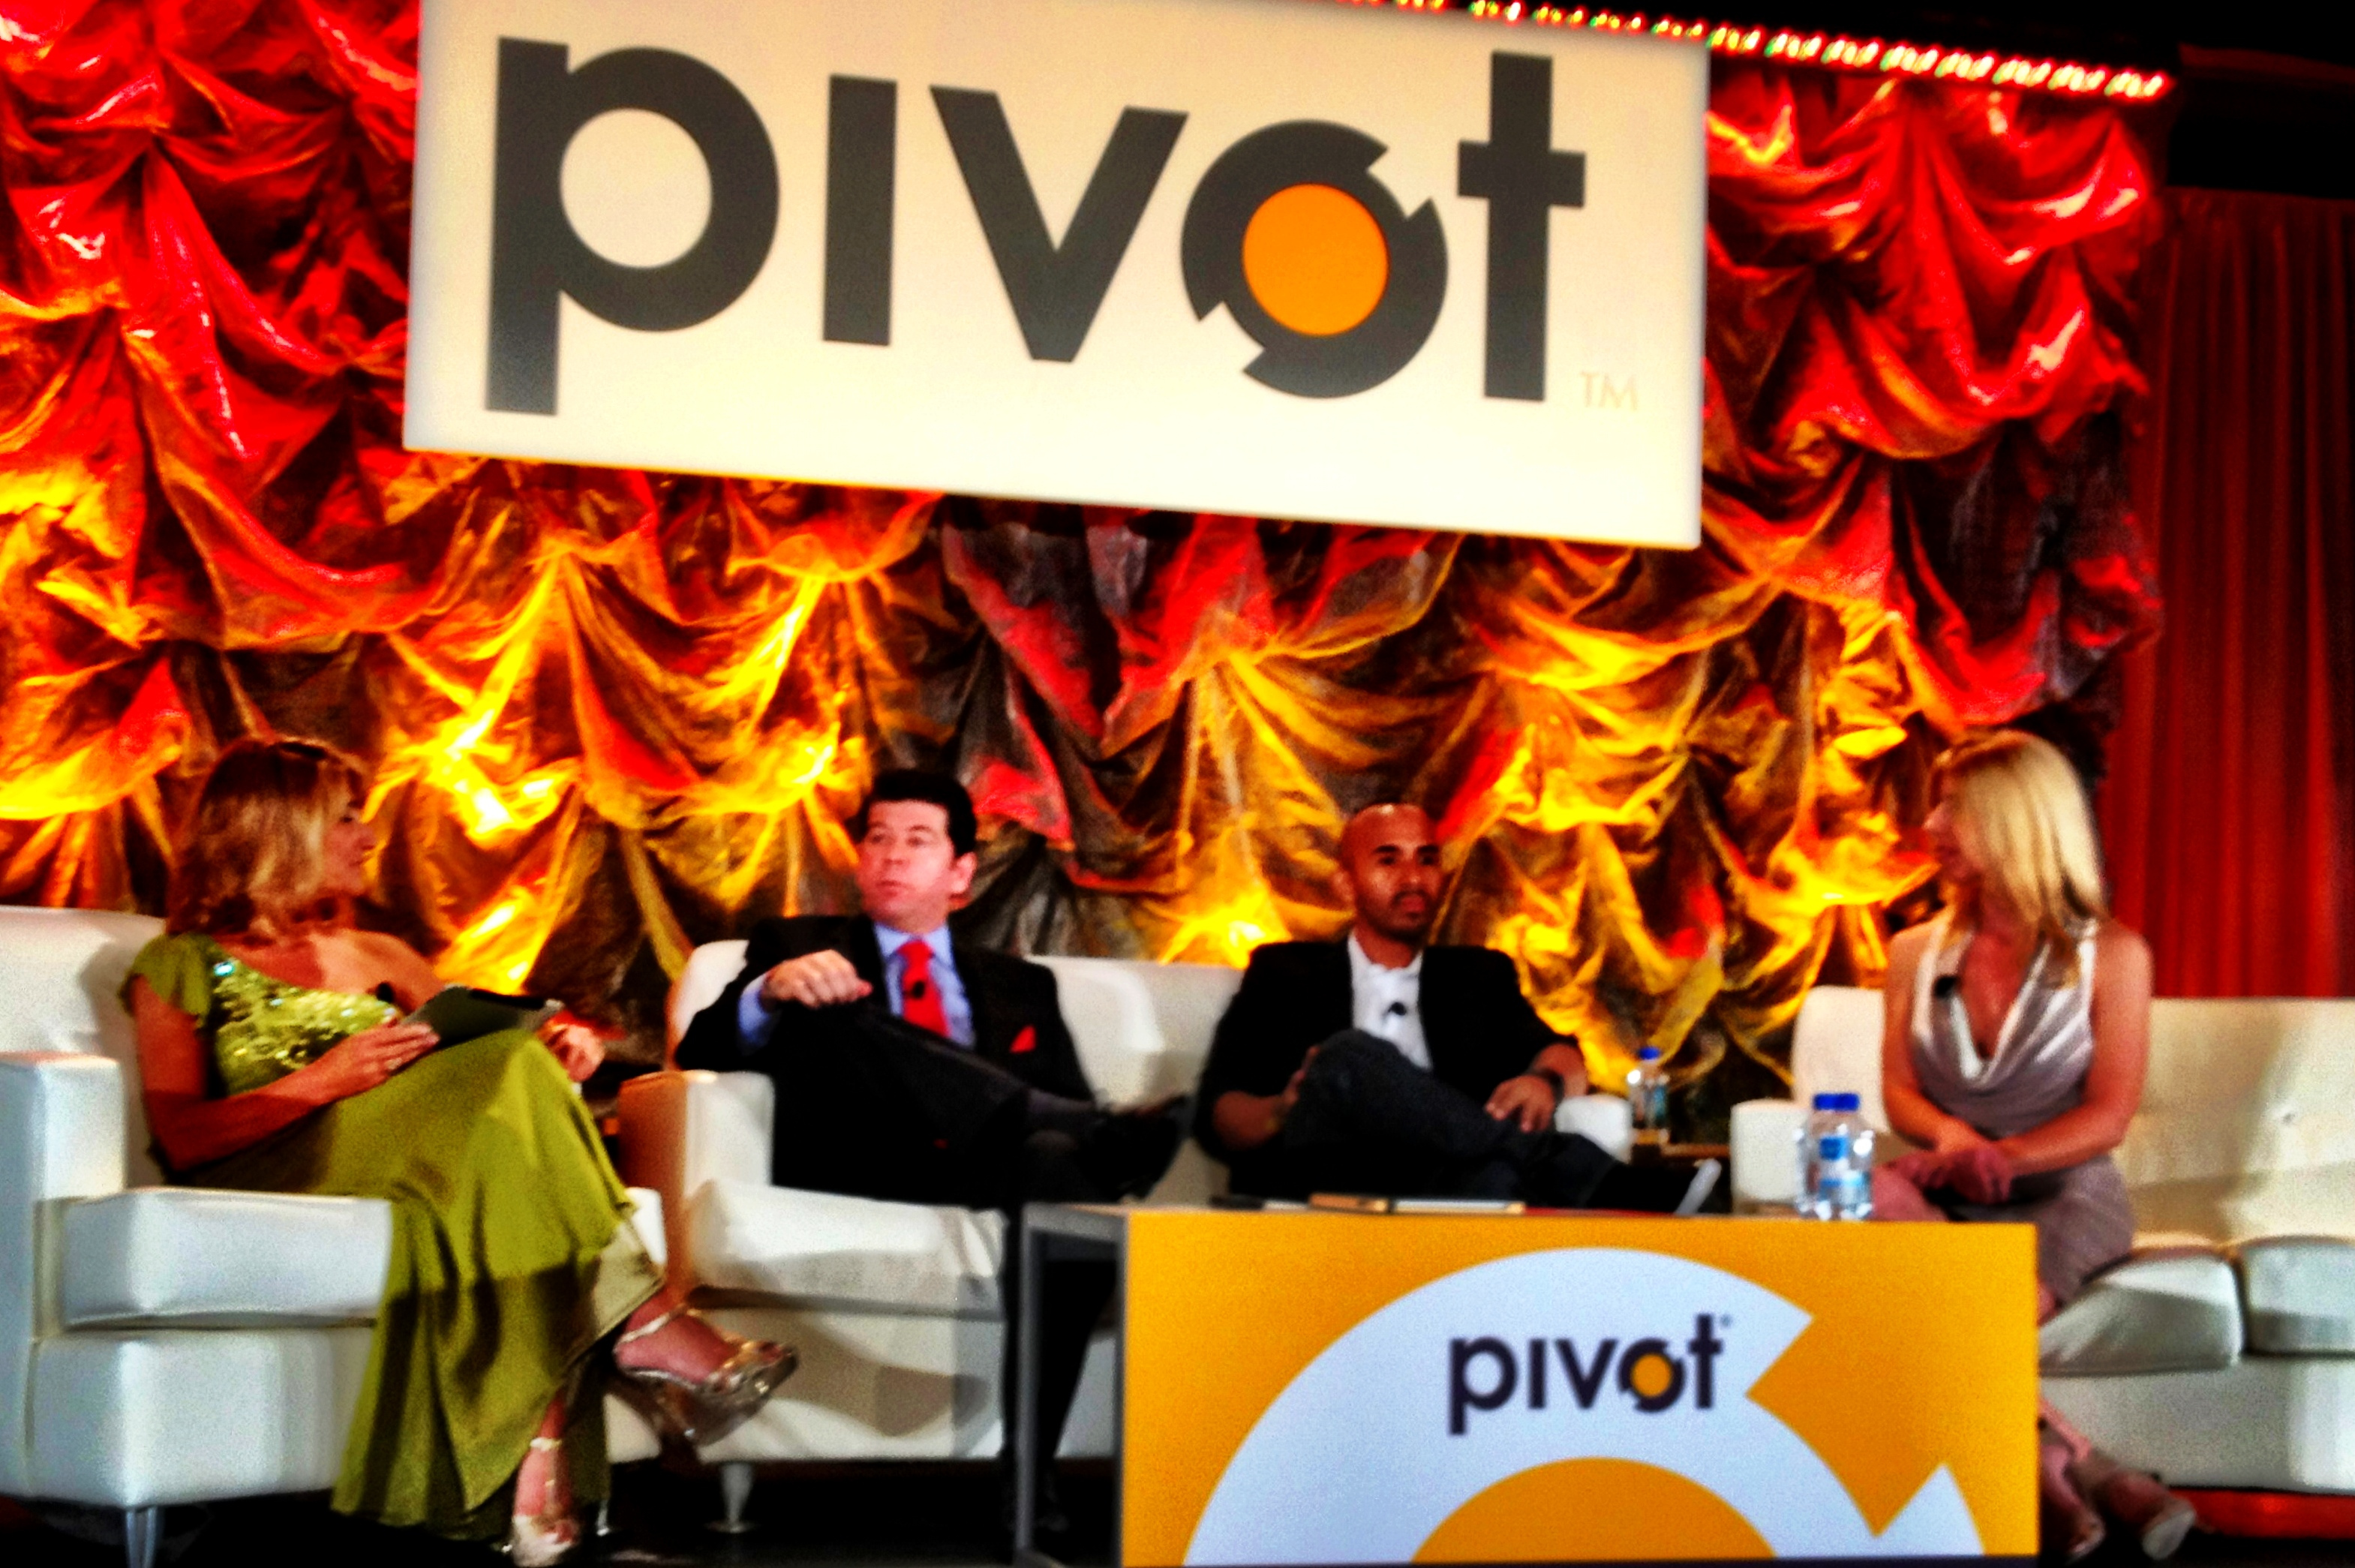 The Grammy Awards' CMO details its social media strategy at Pivot Con